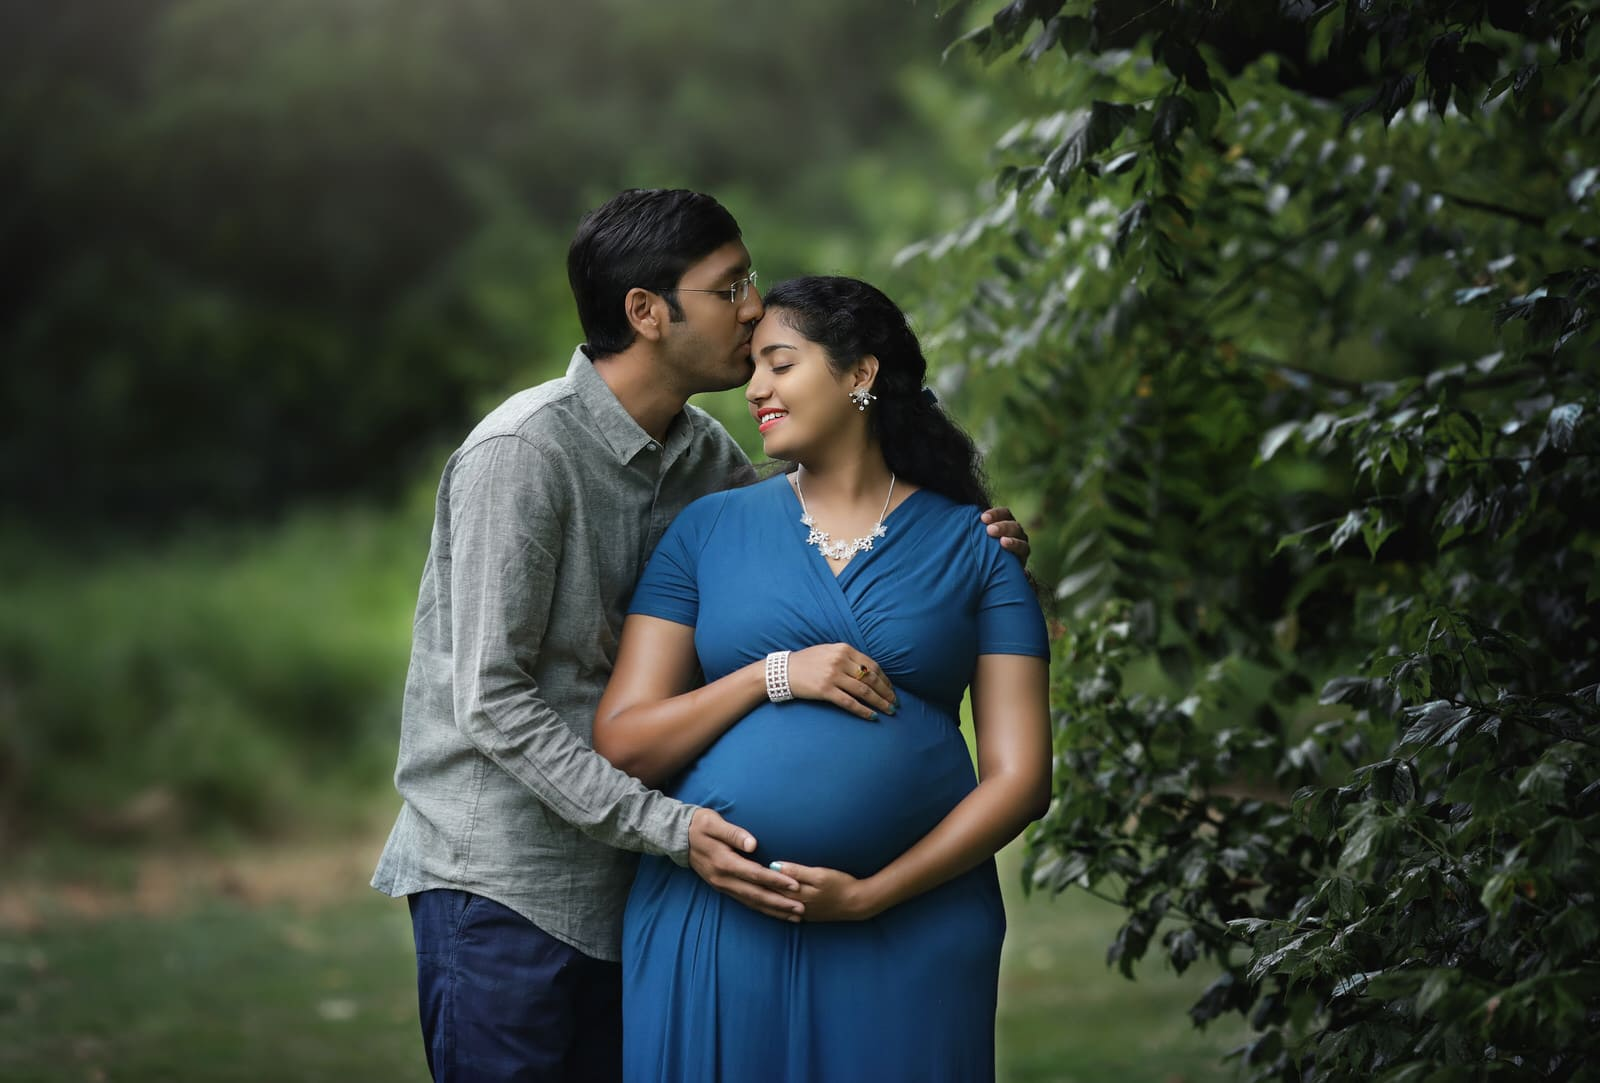 outdoor maternity photography by harrisburg newborn and family photographer, karissa zimmer